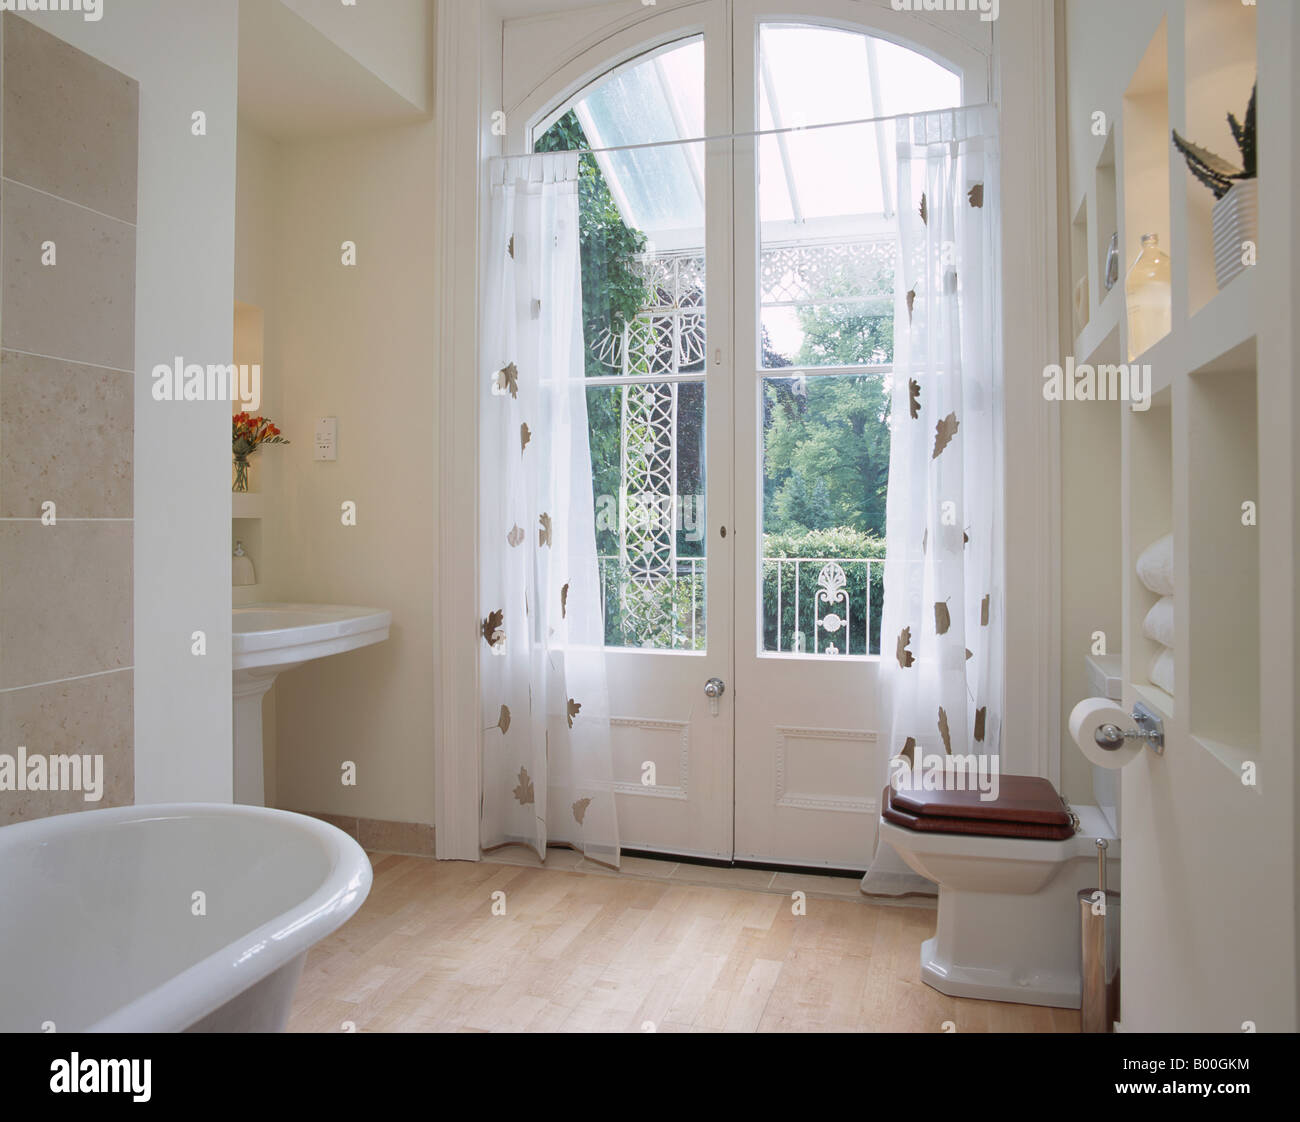 Modern French Bathroom: Patterned White Voile Curtains On French Doors In Modern